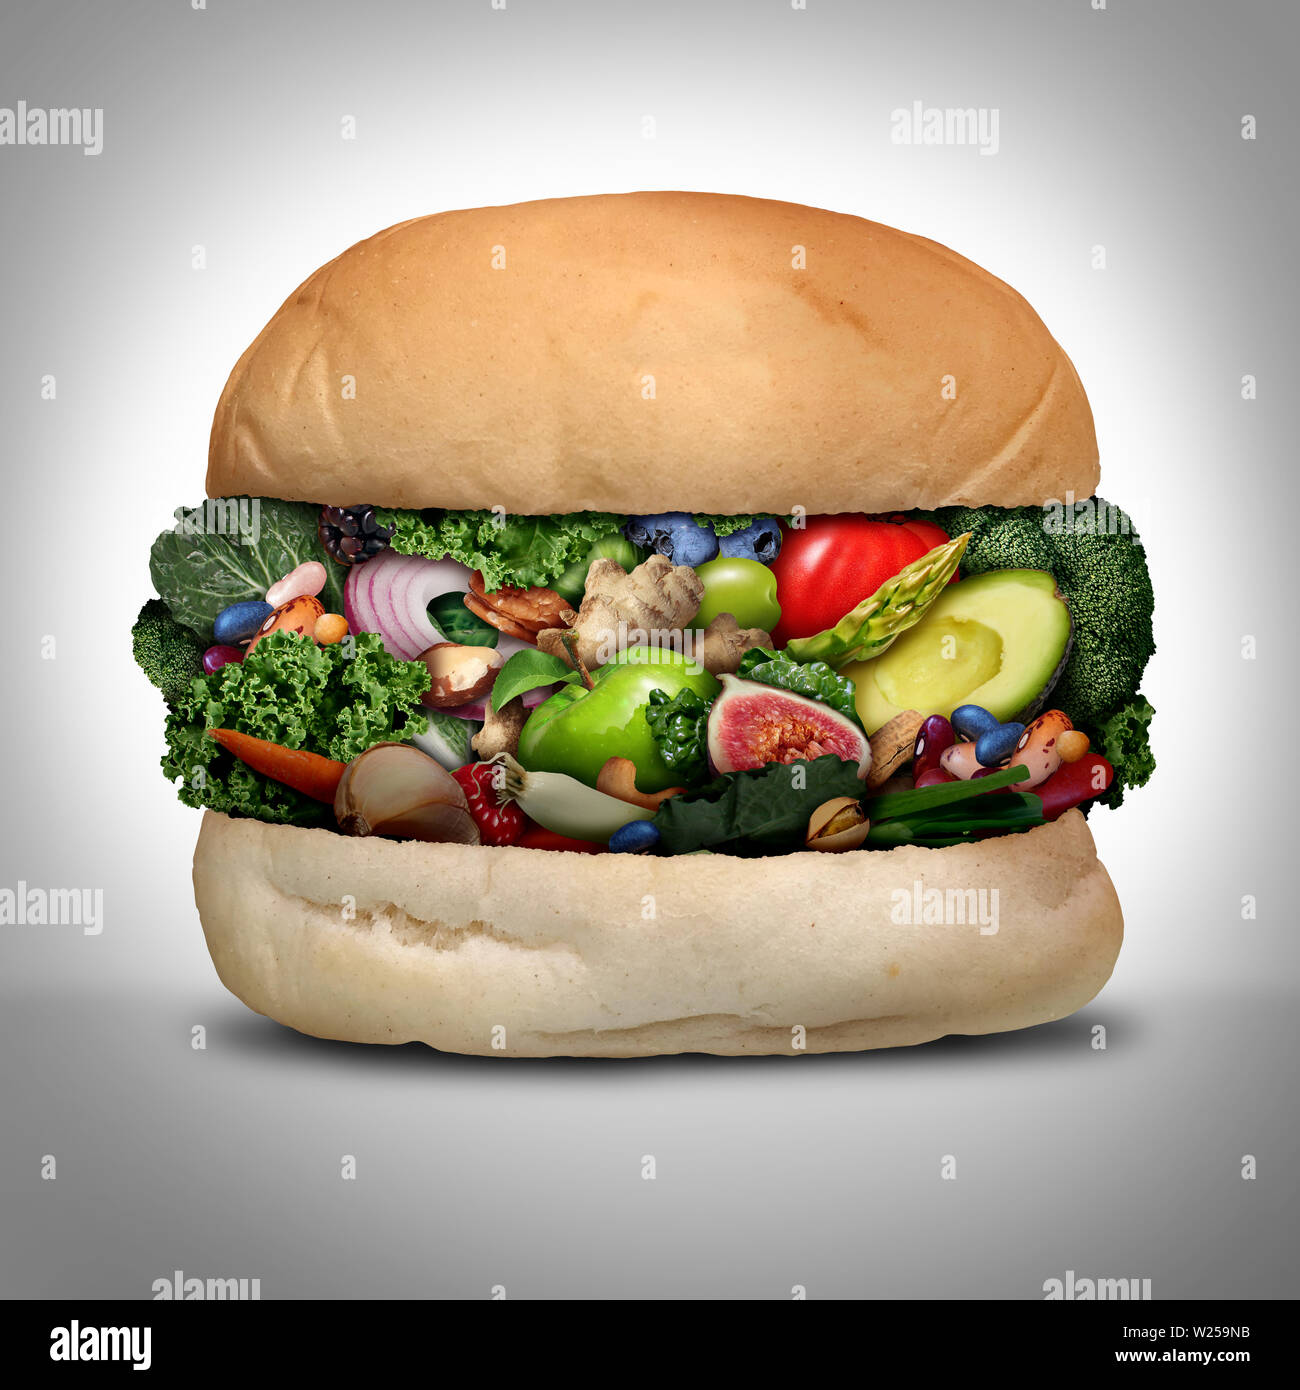 Vegan burger concept as a healthy green hamburger made of fresh organic beans vegetables fruit and nuts as a nutritious low cholesterol cruelty free. Stock Photo